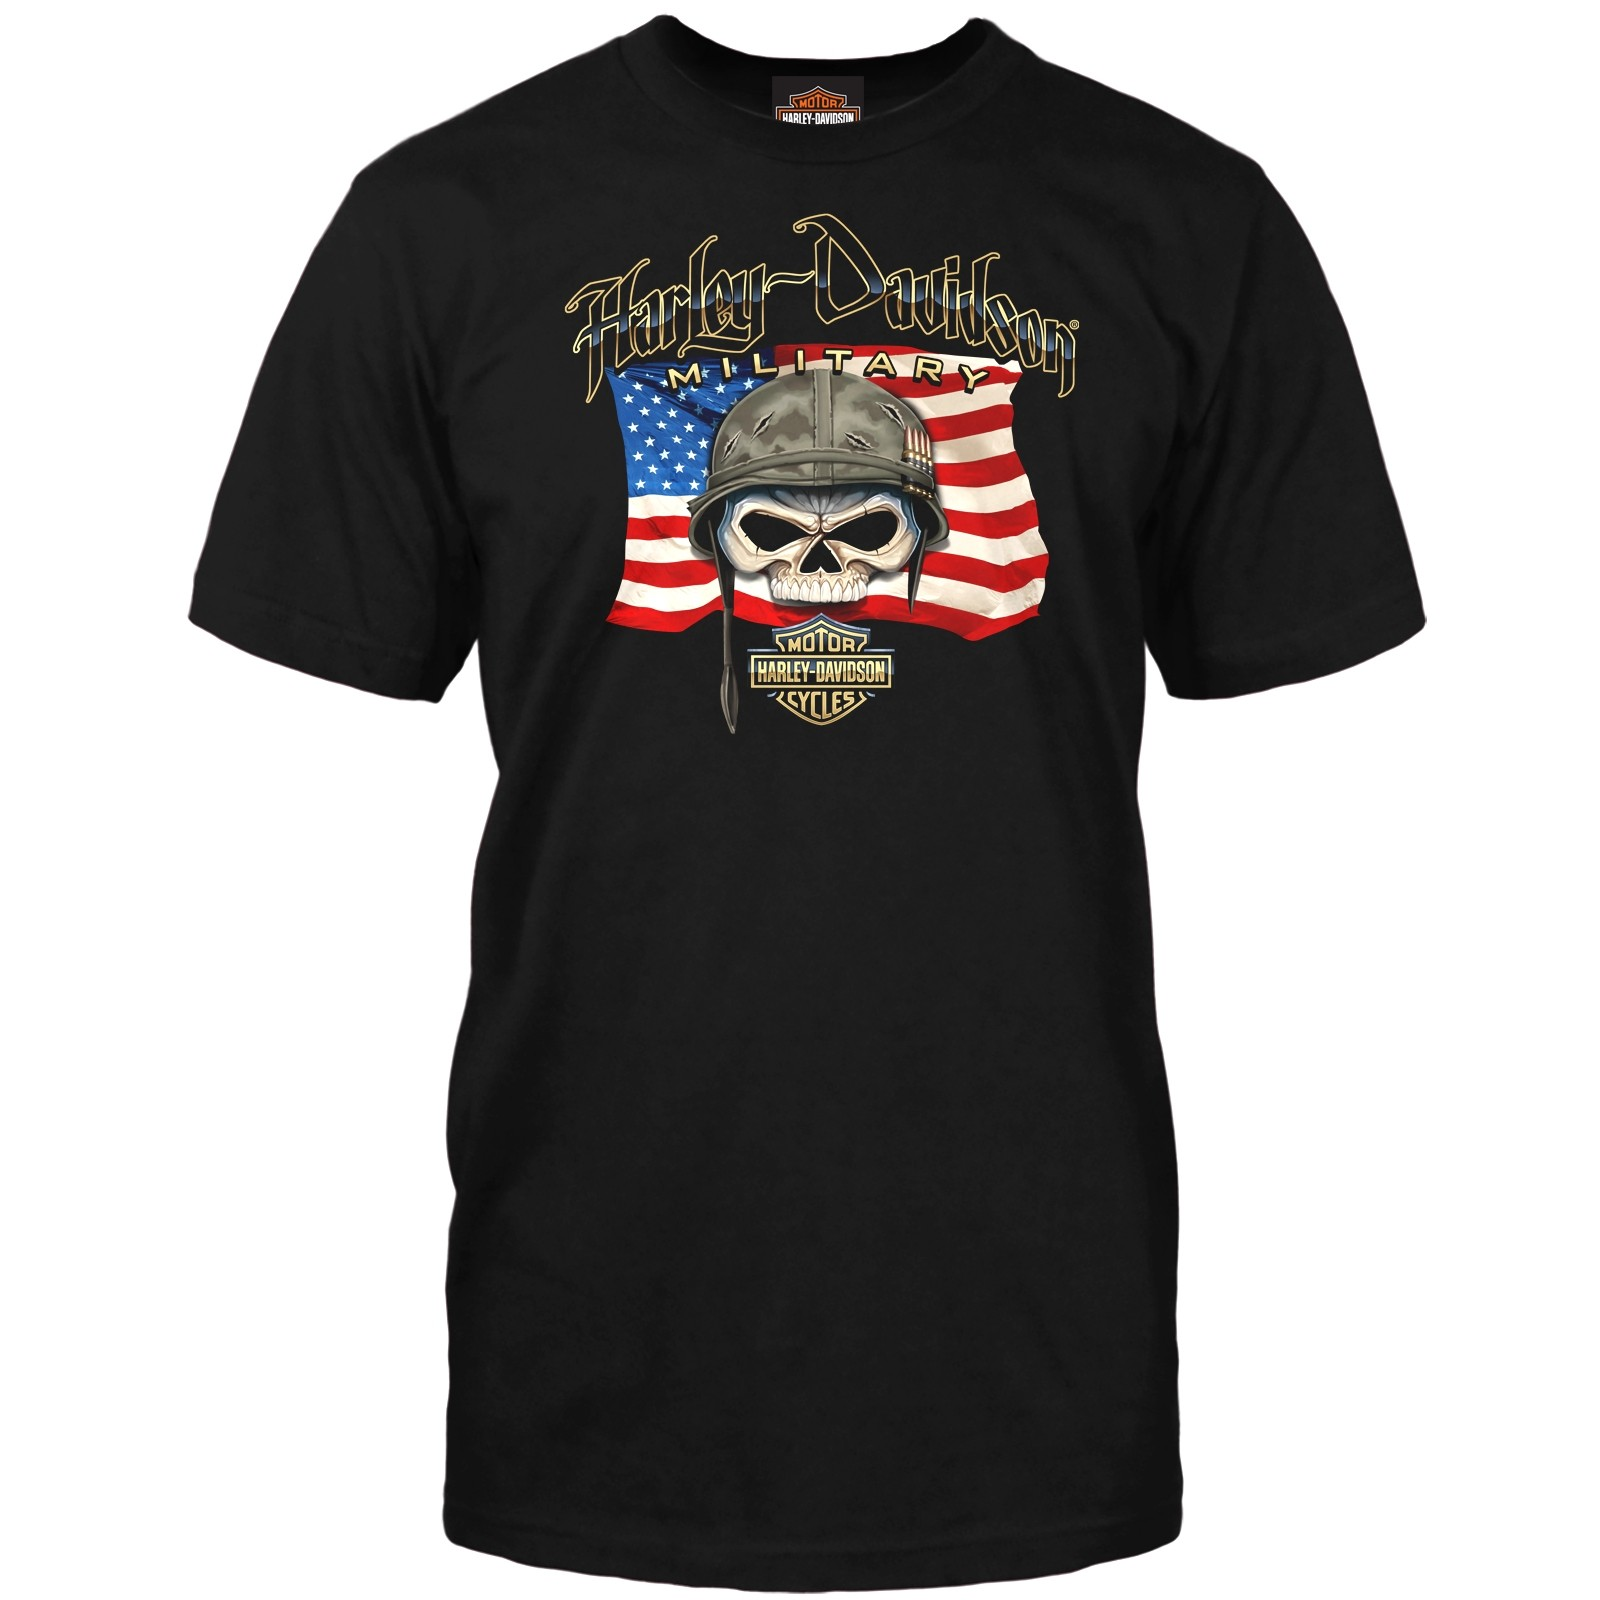 Harley-Davidson Military Men's Graphic T-Shirt | Overseas Tour - Willie G Flag